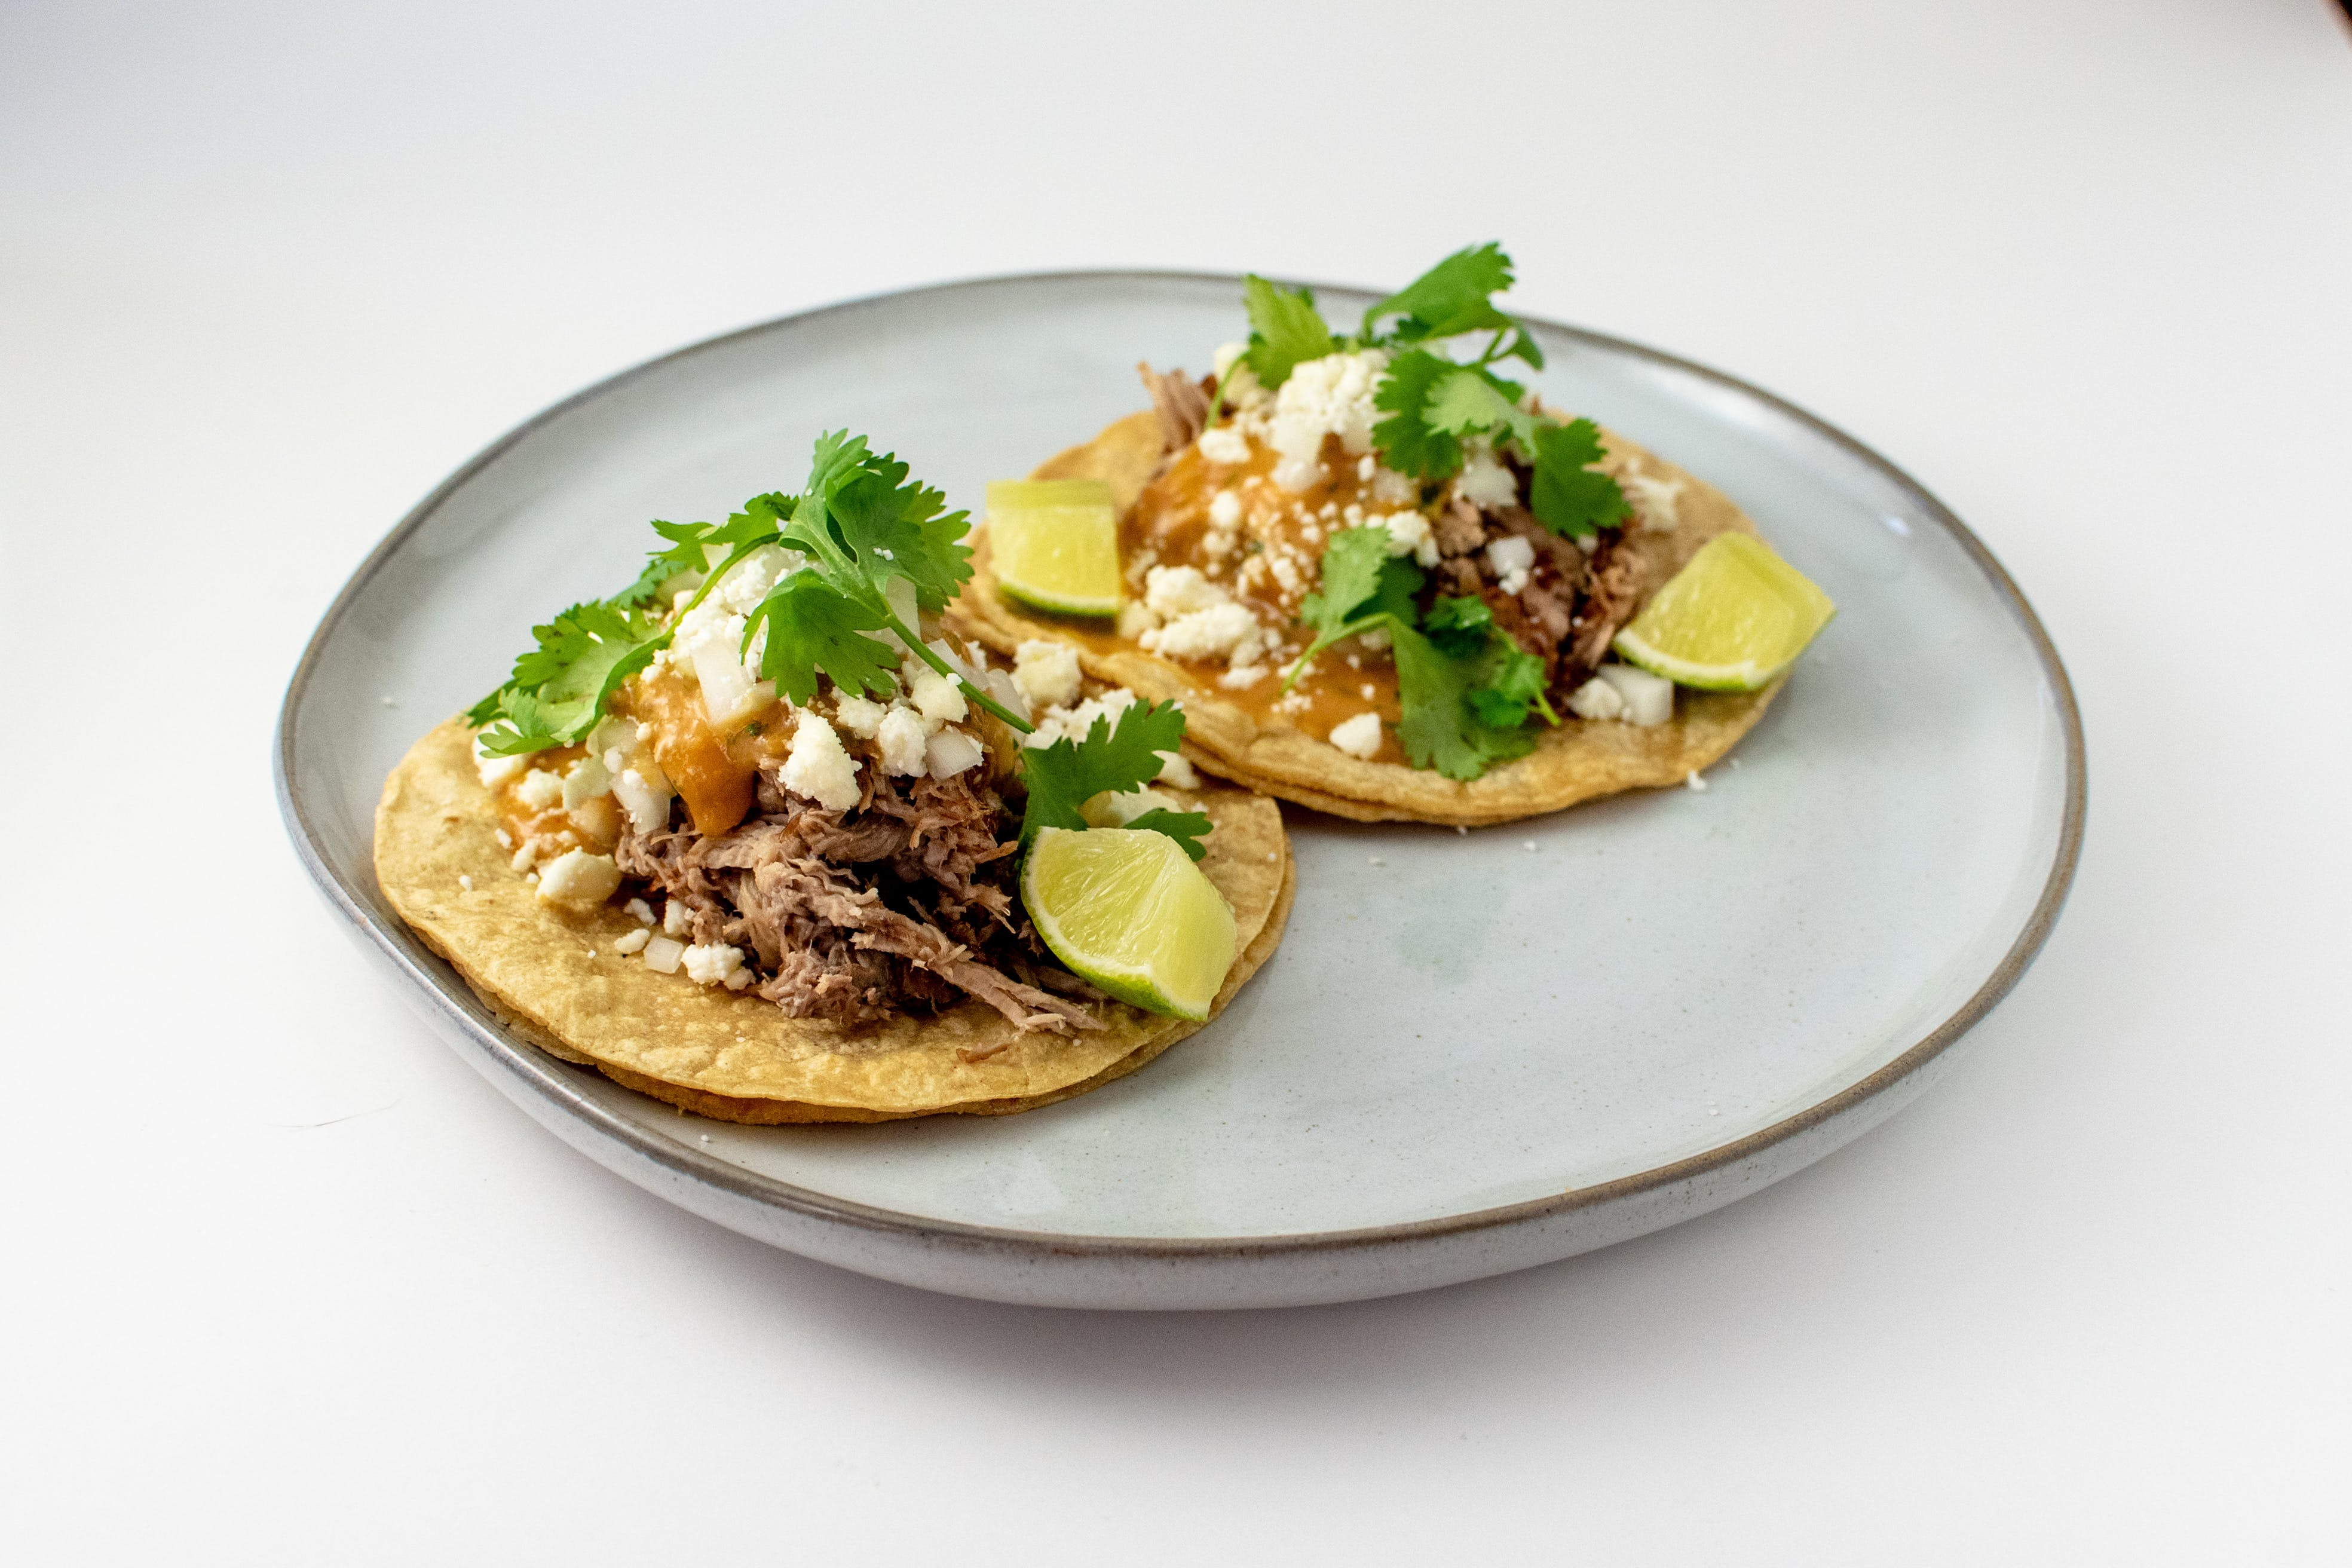 Cola Braised Pork Carnitas Tacos from Taco Royale - Center Ave in Janesville, WI